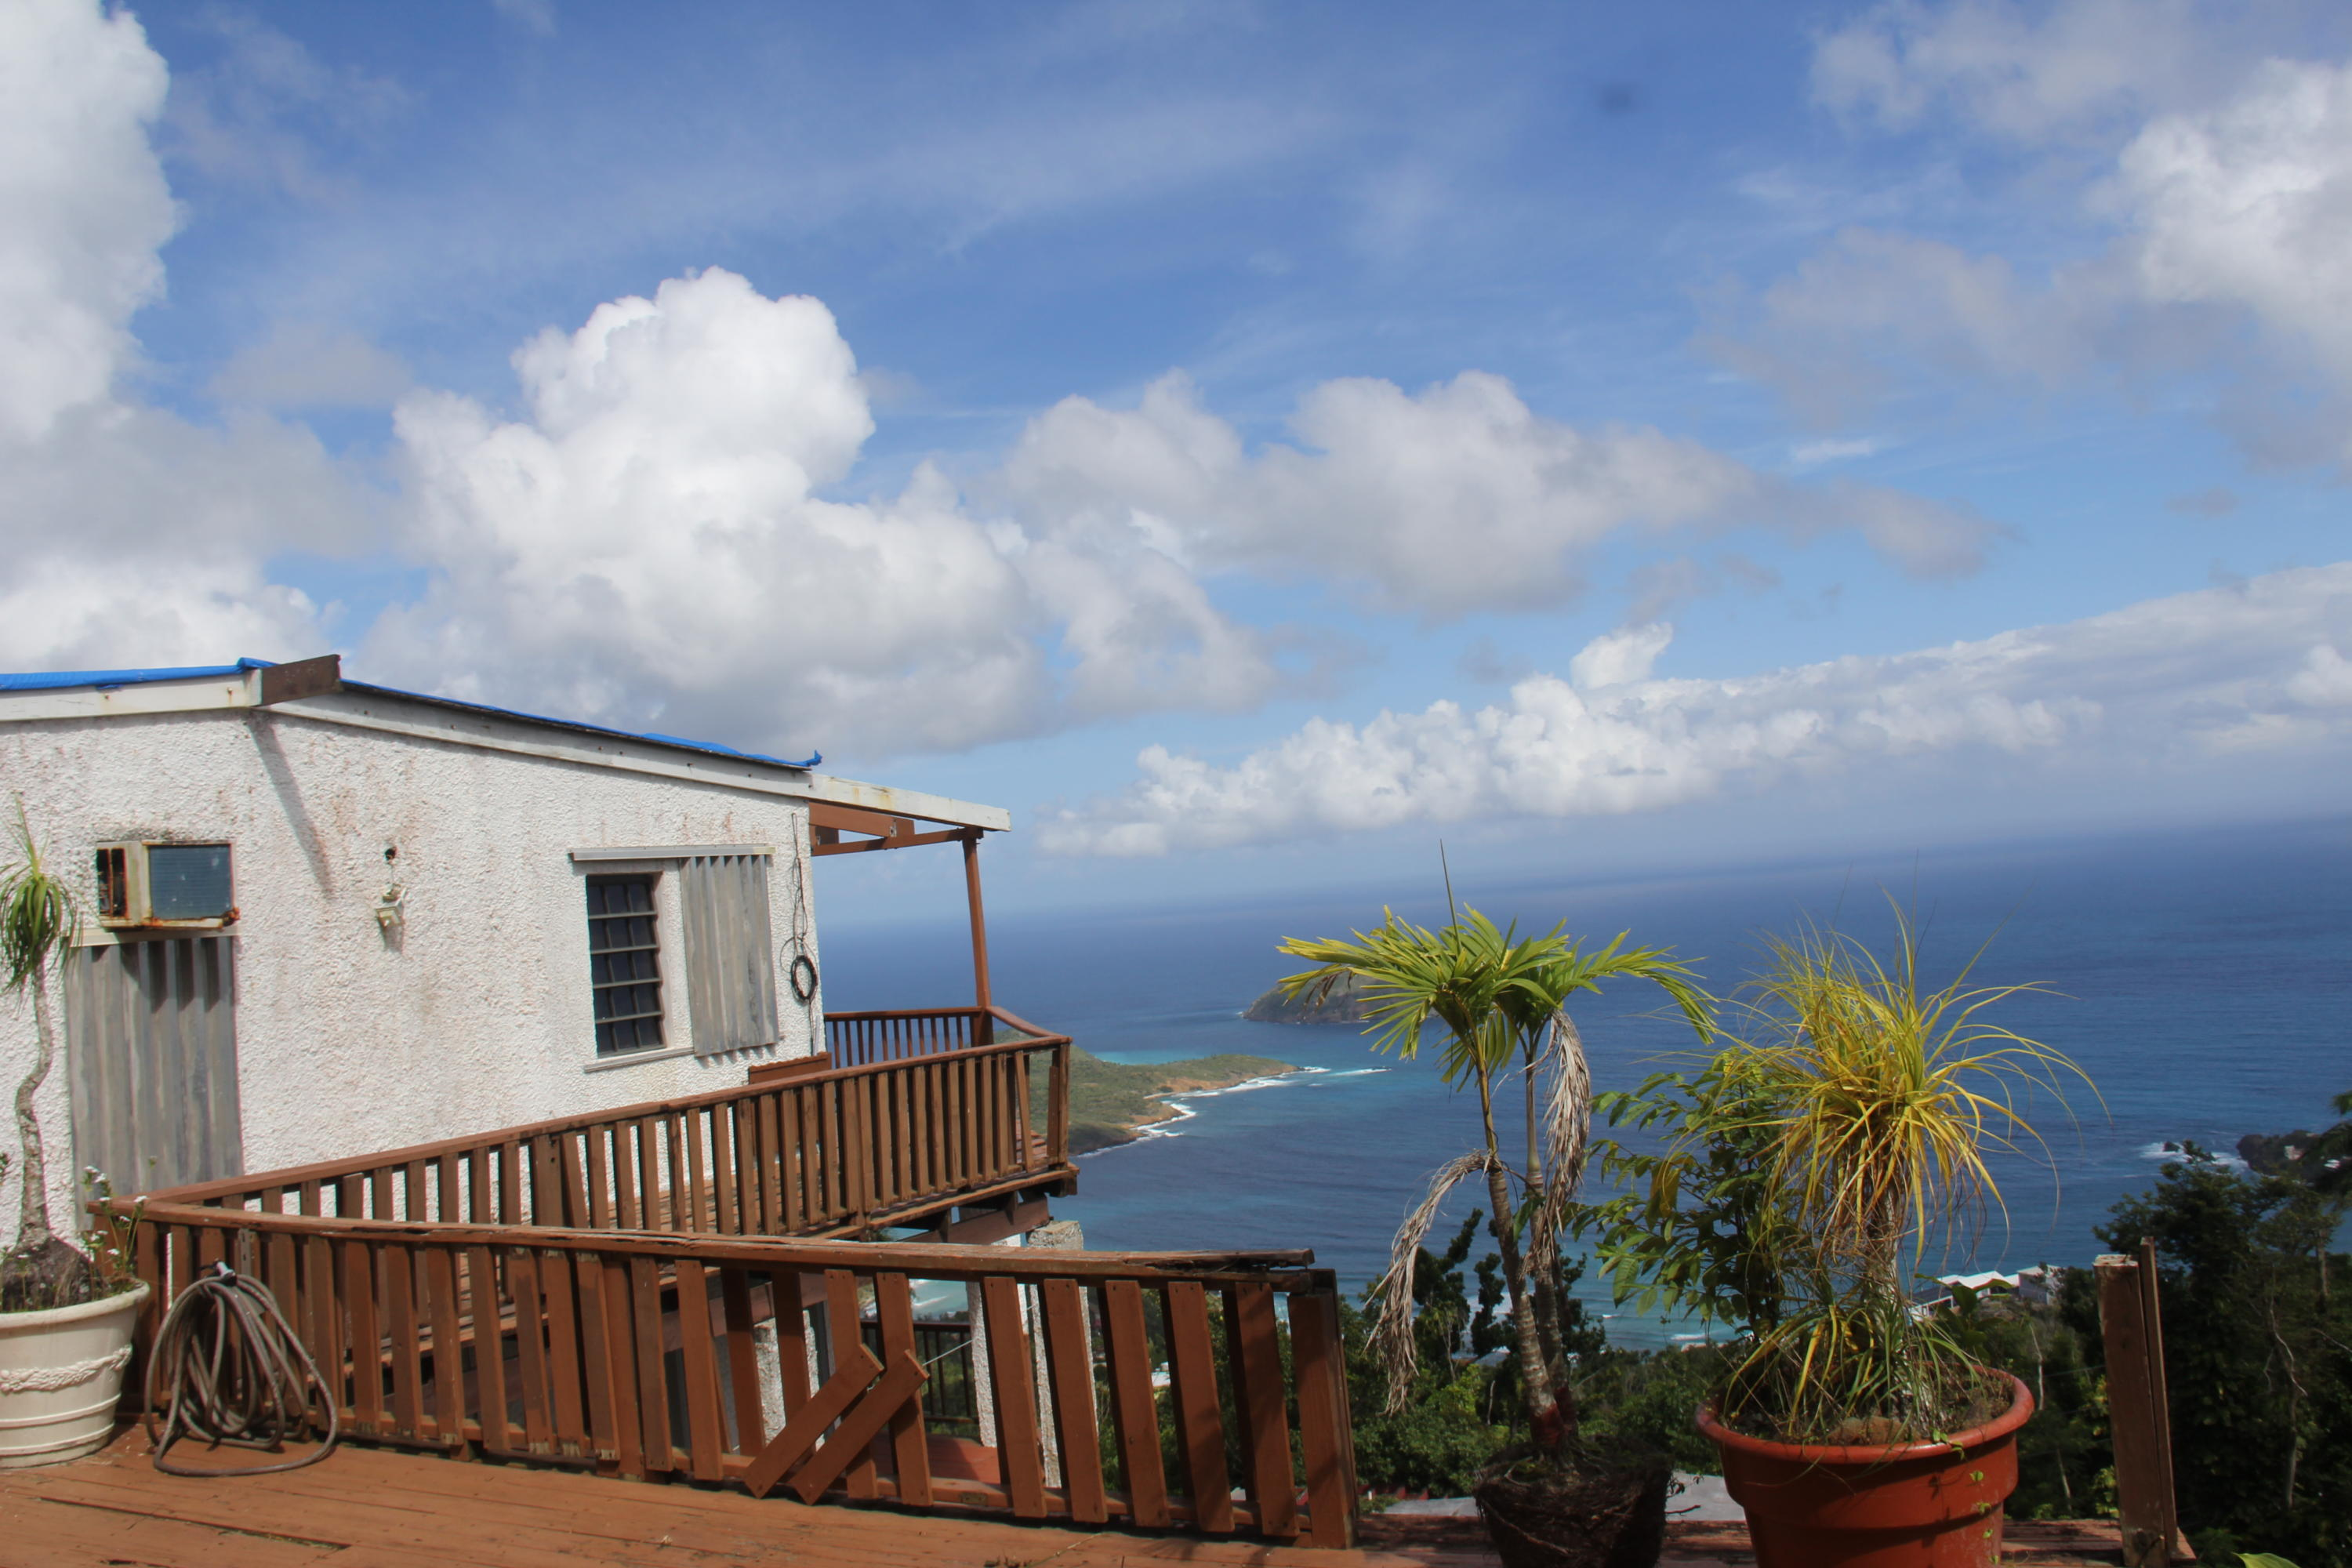 Multi-Family Home for Sale at 7-1 Lilliendal & Marienhoj LNS 7-1 Lilliendal & Marienhoj LNS St Thomas, Virgin Islands 00802 United States Virgin Islands